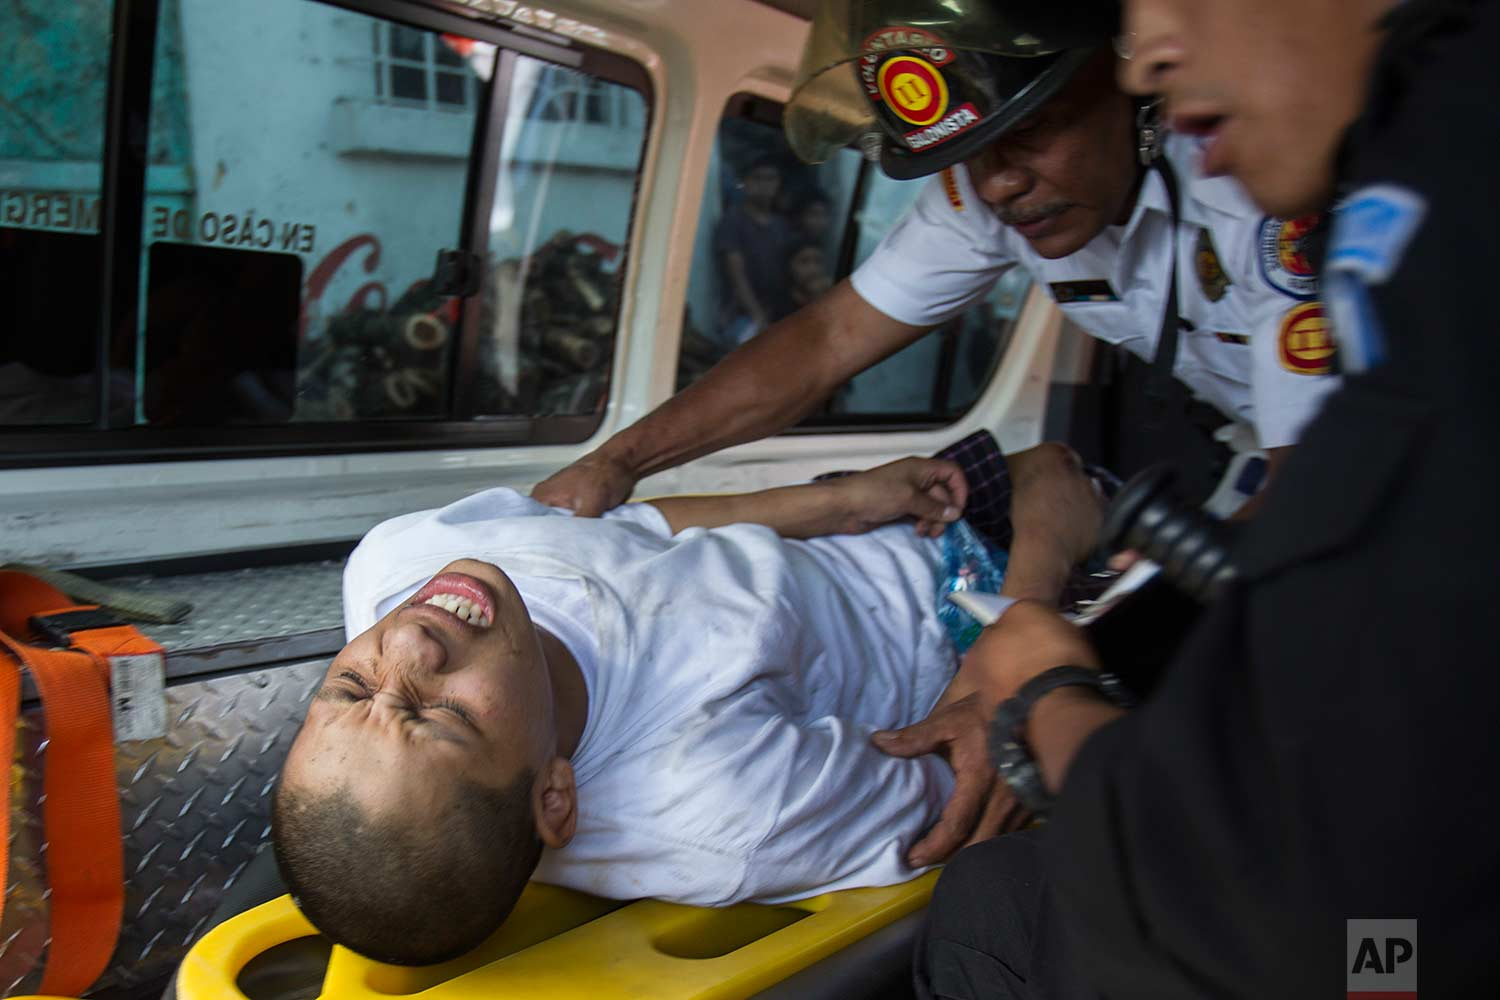 A juvenile inmate is attended by a medic and interrogated by a police officer, after he was injured during the recapture of the Juvenile Correctional Center Gaviotas by police, in Guatemala City, Monday, July 3, 2017. (AP Photo/Moises Castillo)